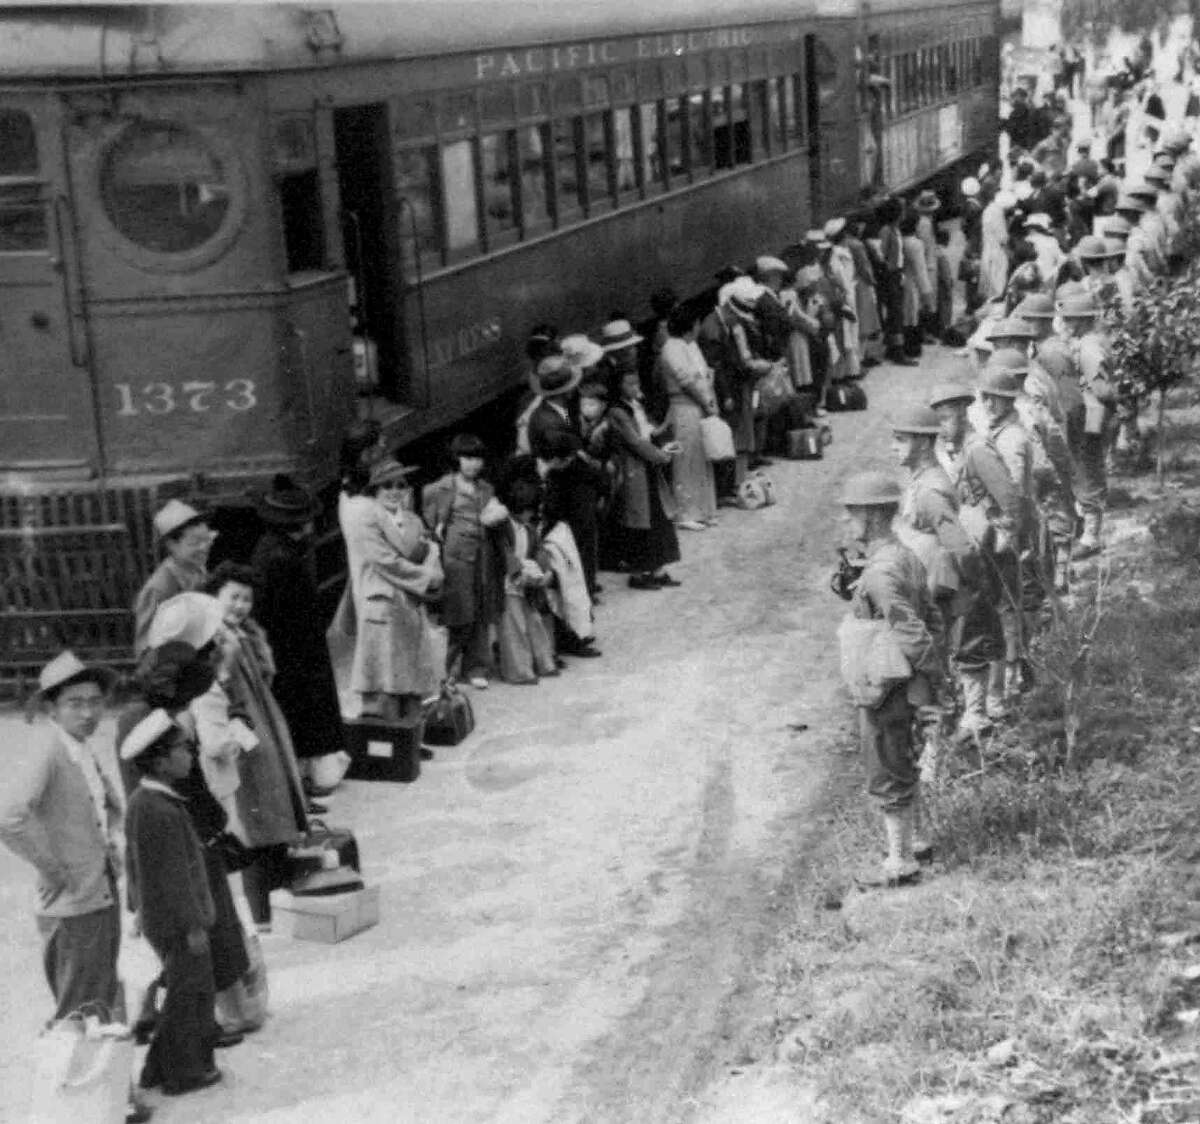 ADVANCE FOR SUNDAY, SEPT. 30--People of Japanese descent line up for a train that will take them from the Santa Anita assembly camp in California to an internment camp at Gila River, Ariz. in 1942. U.S. soldiers face them, right. The internment of Japanese during World War II required the suspension of civil rights for the minority group. (AP Photo/National Archives)